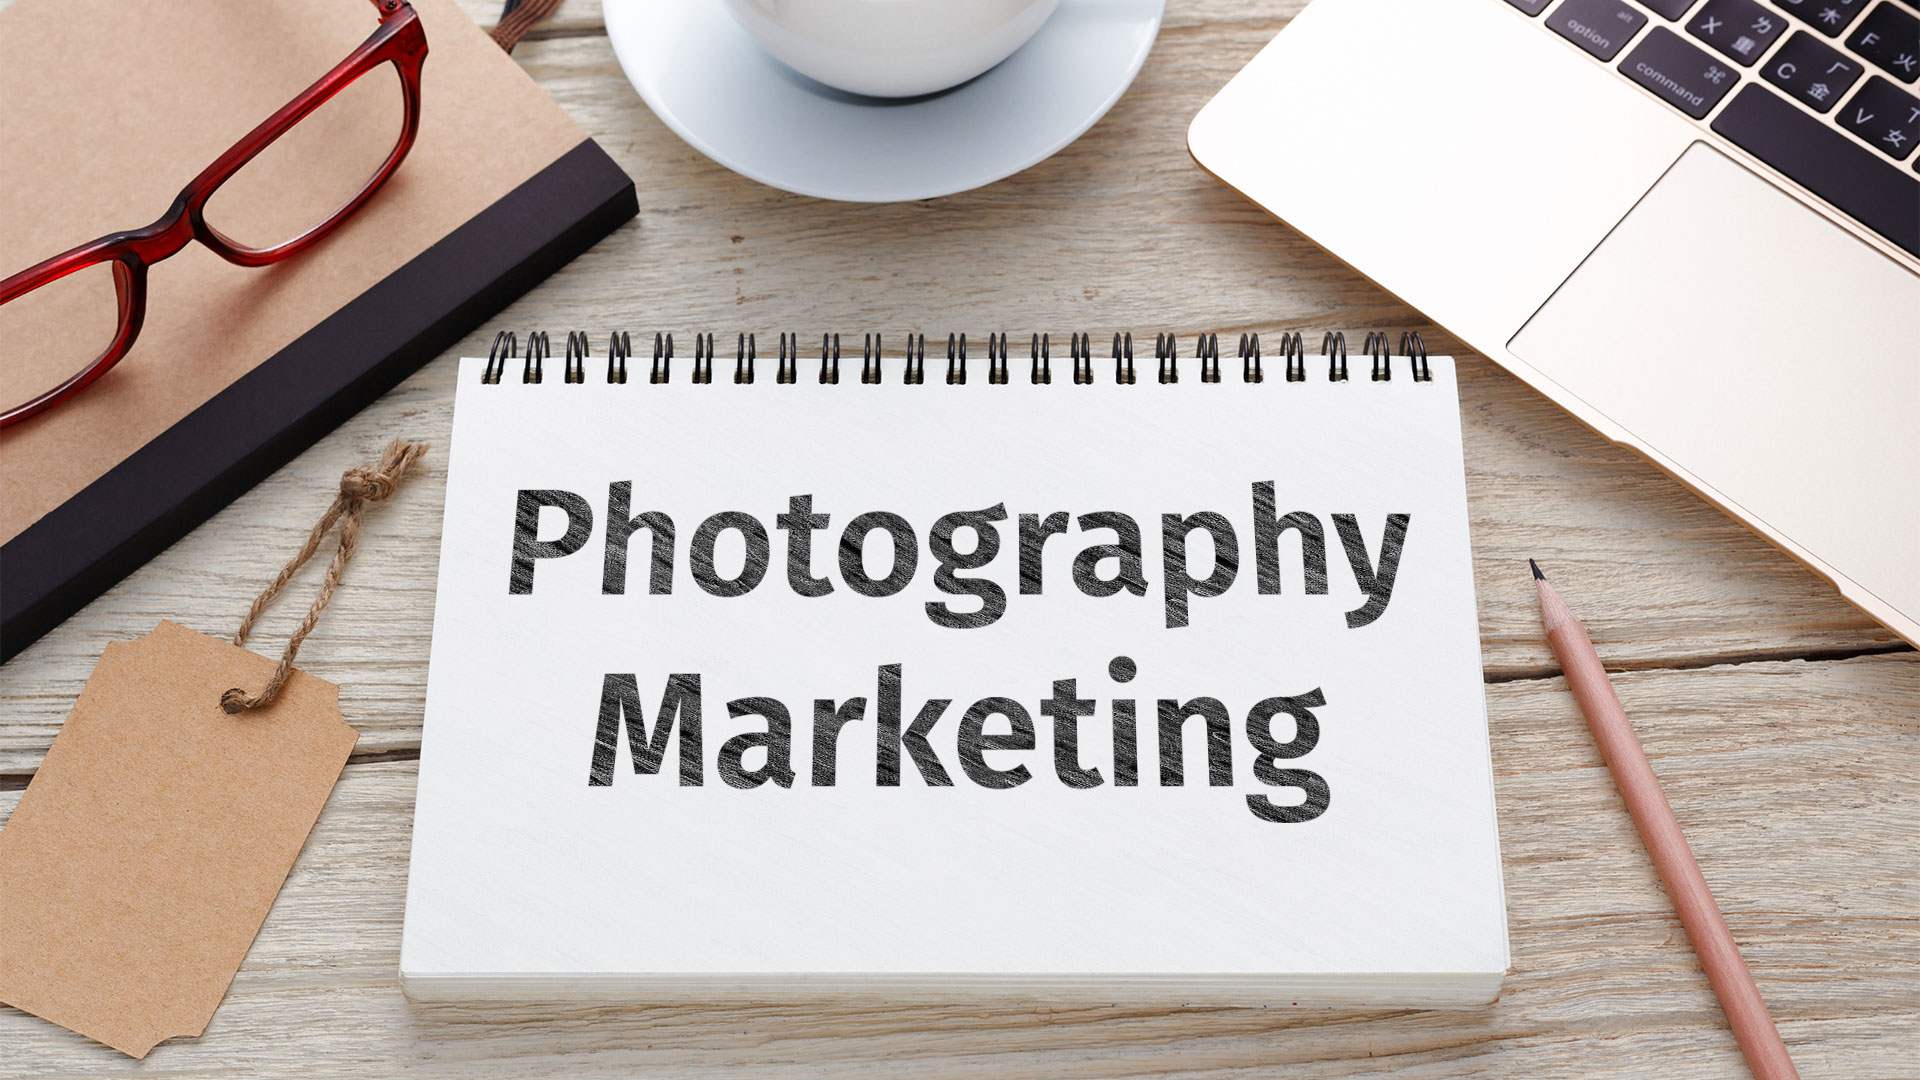 Photography Marketing: Is Blogging Dead?